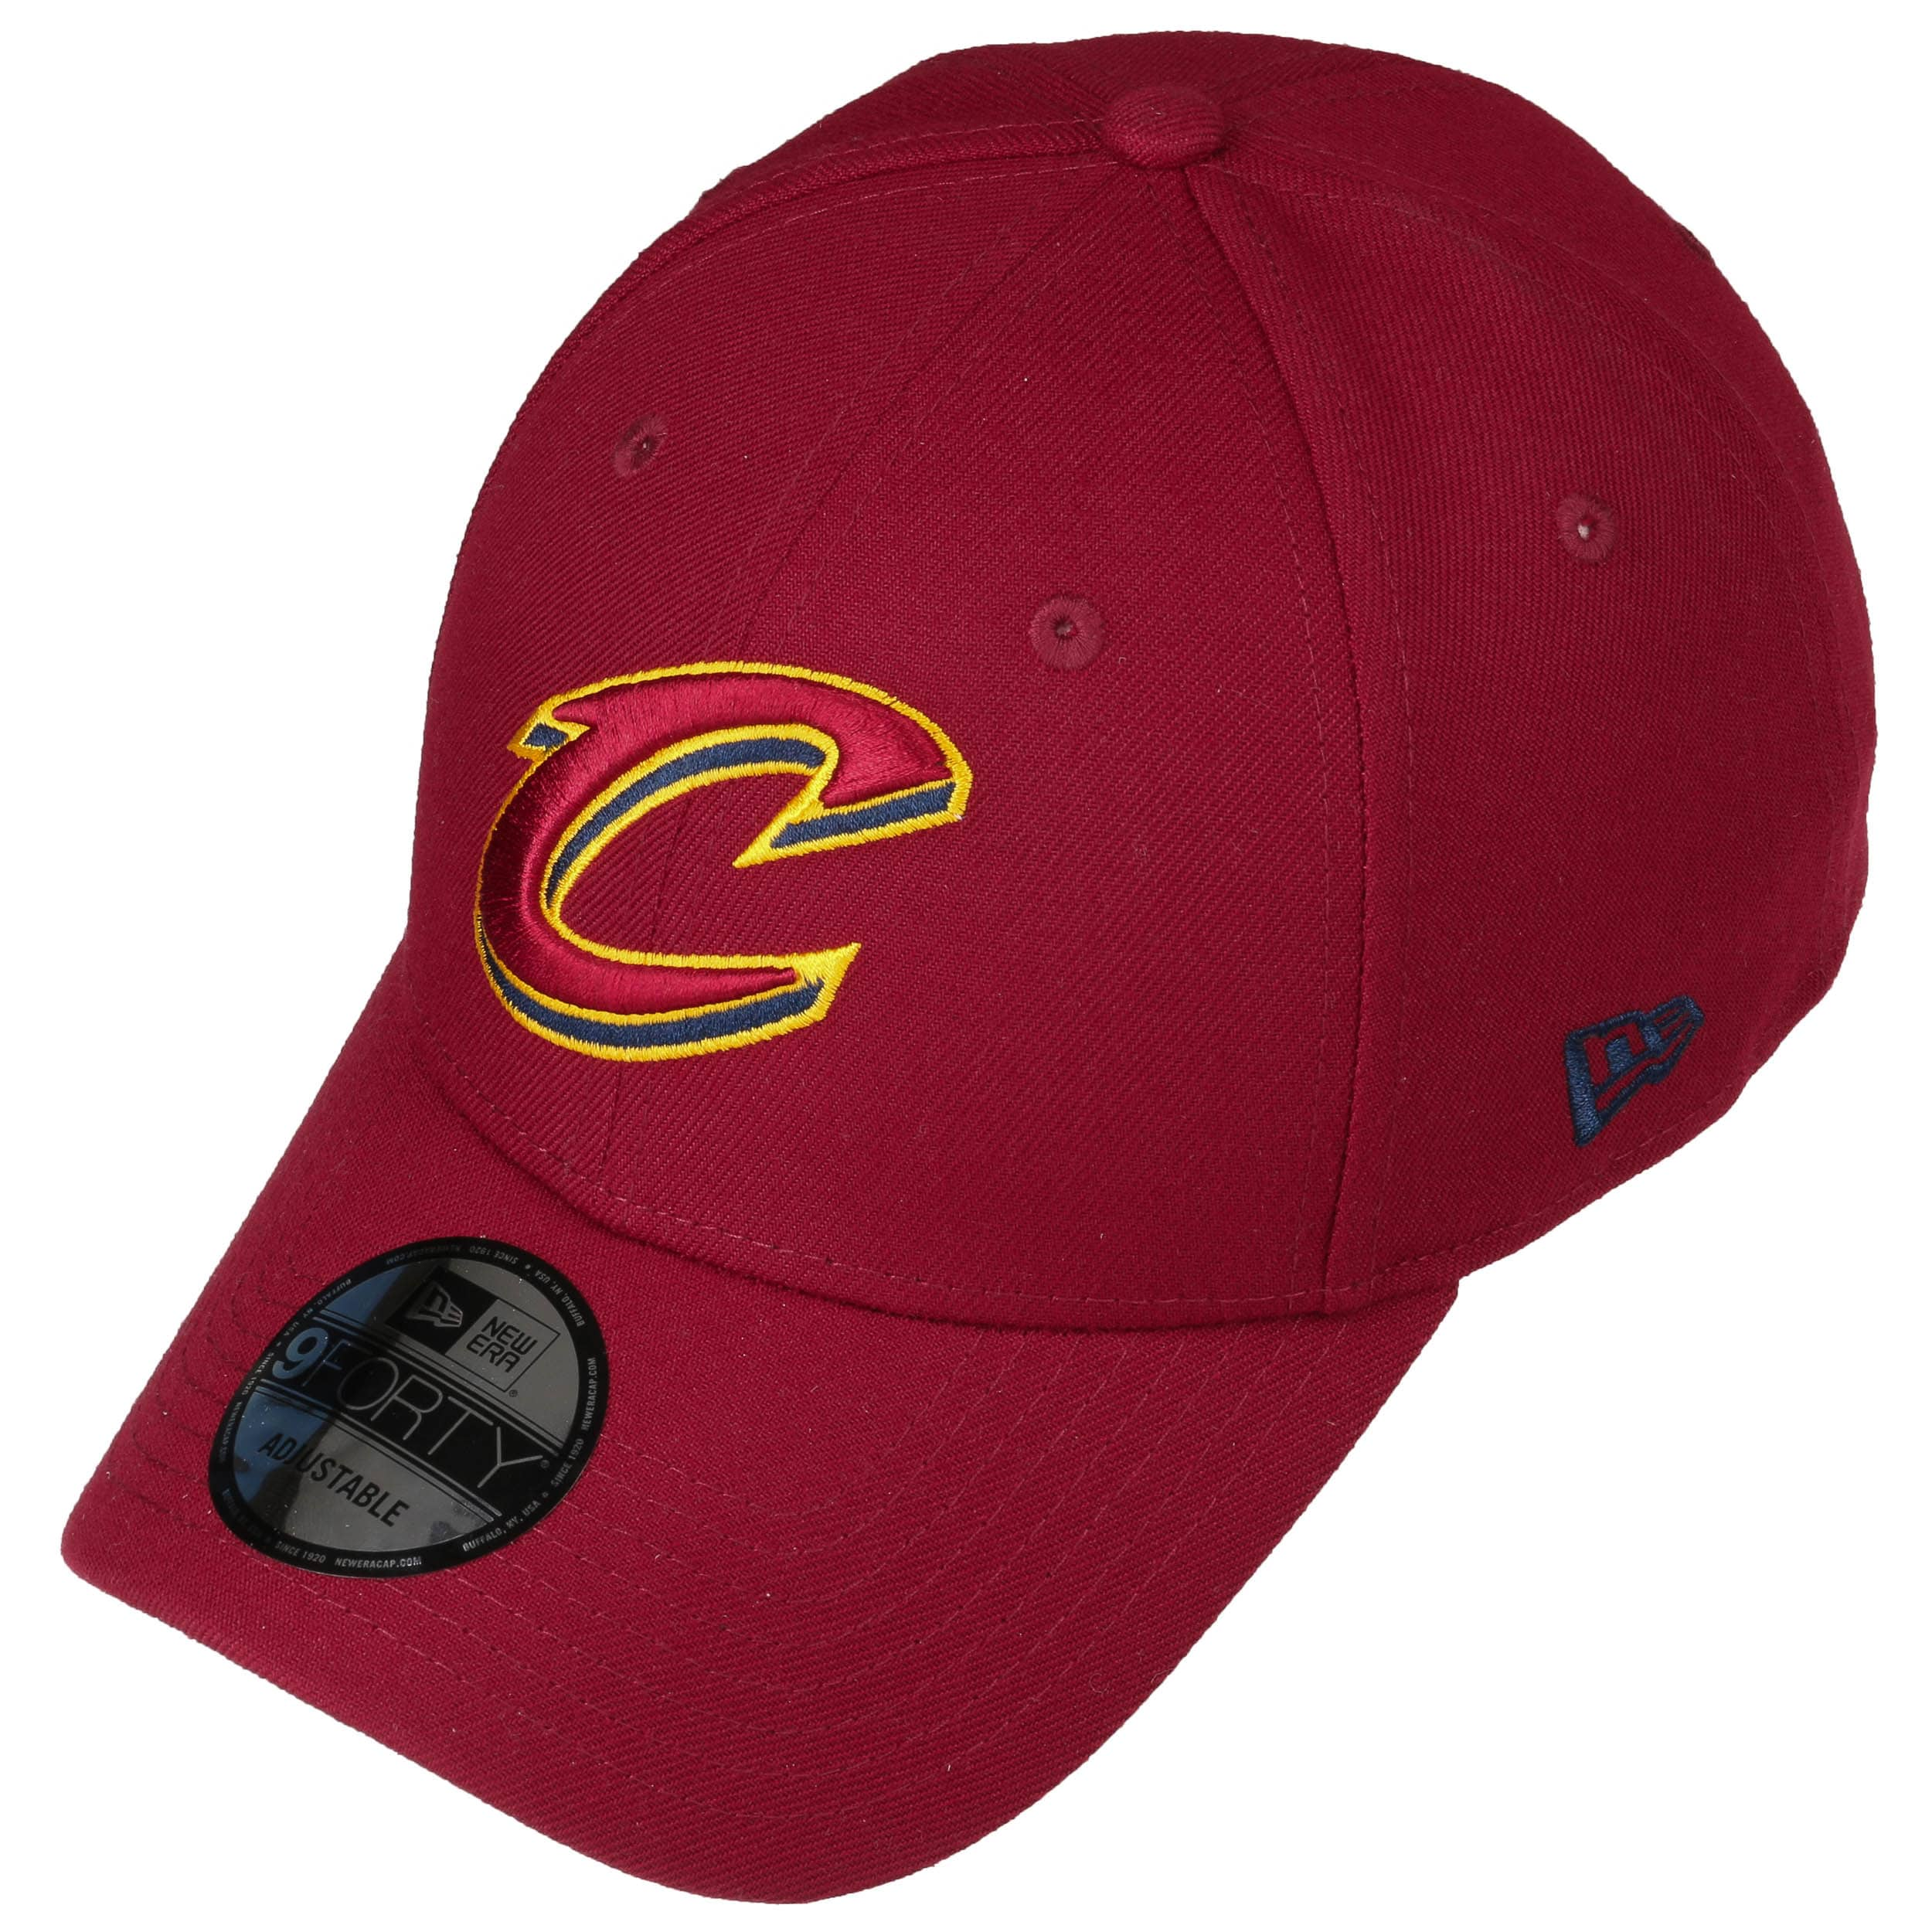 Cappellino 9Forty The League Cavs by New Era - rosso bordeaux 1 ... 7ffda14a165e